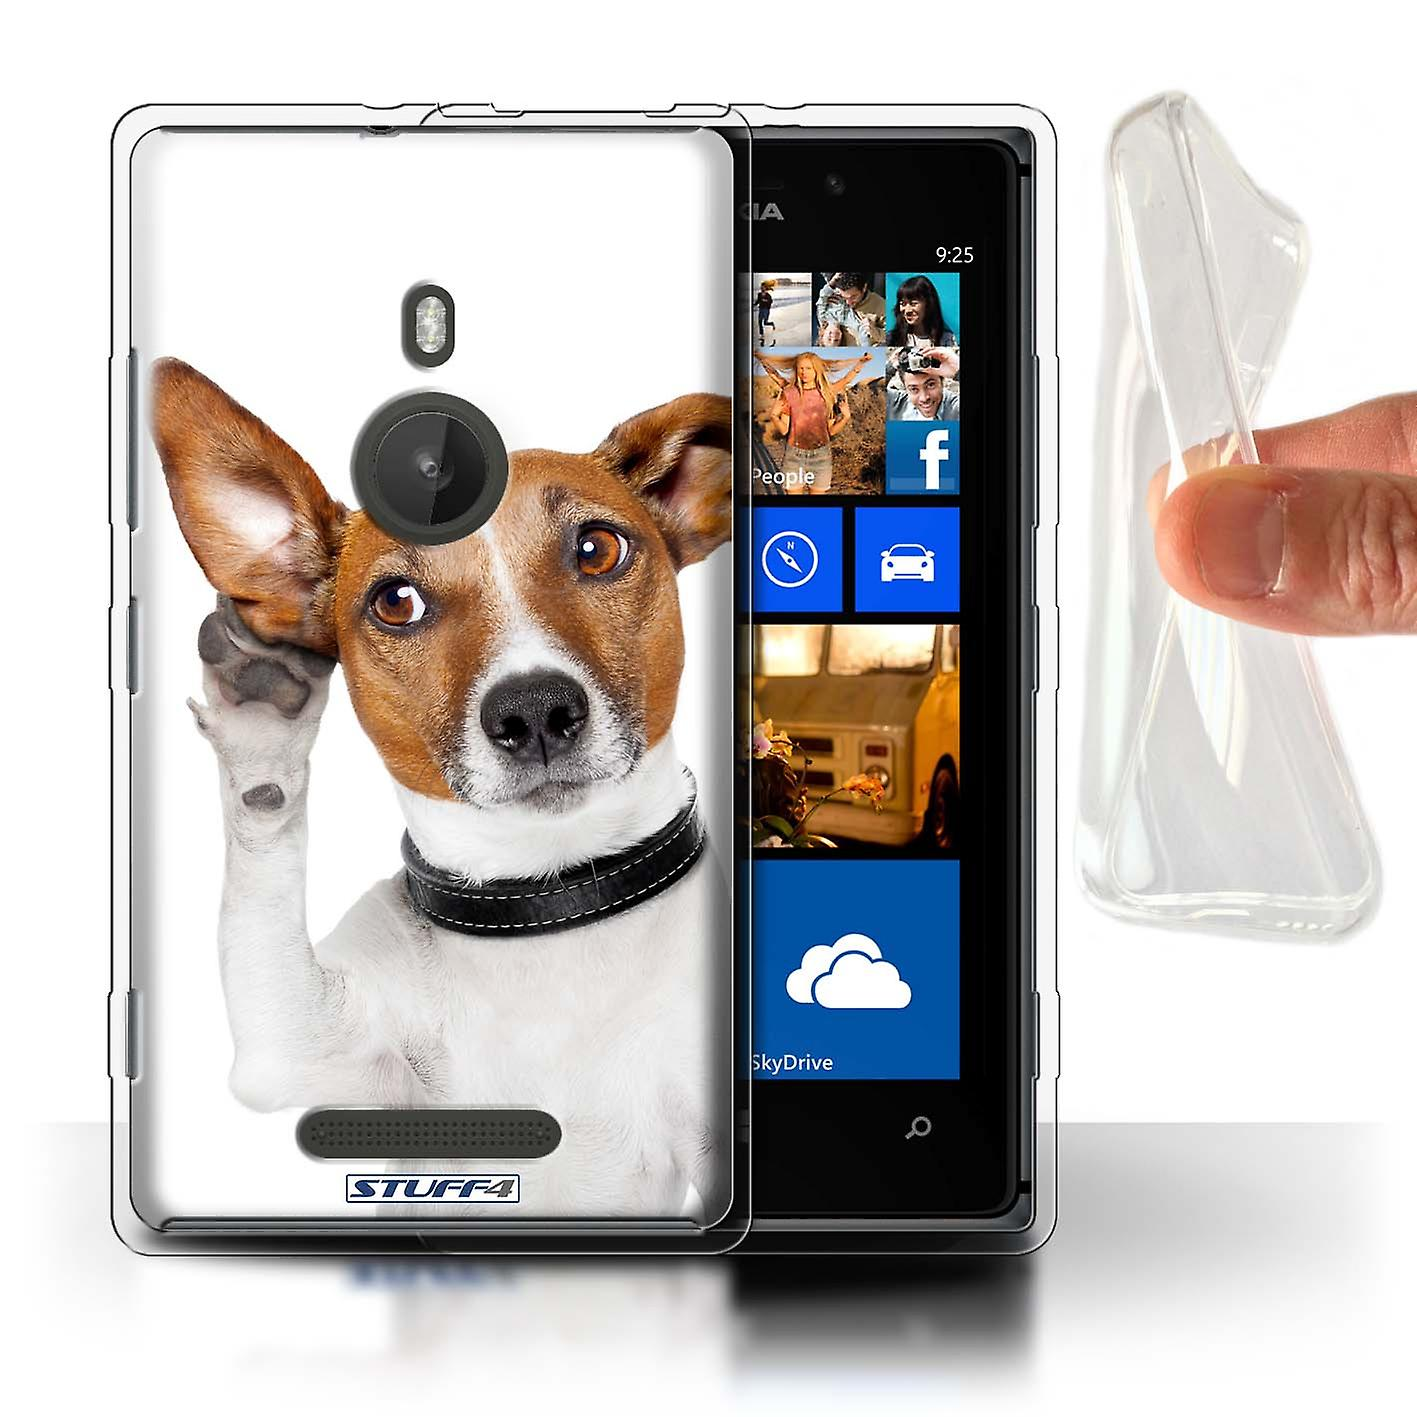 STUFF4 Gel TPU Case/Cover for Nokia Lumia 925/Listening Dog/Funny Animals